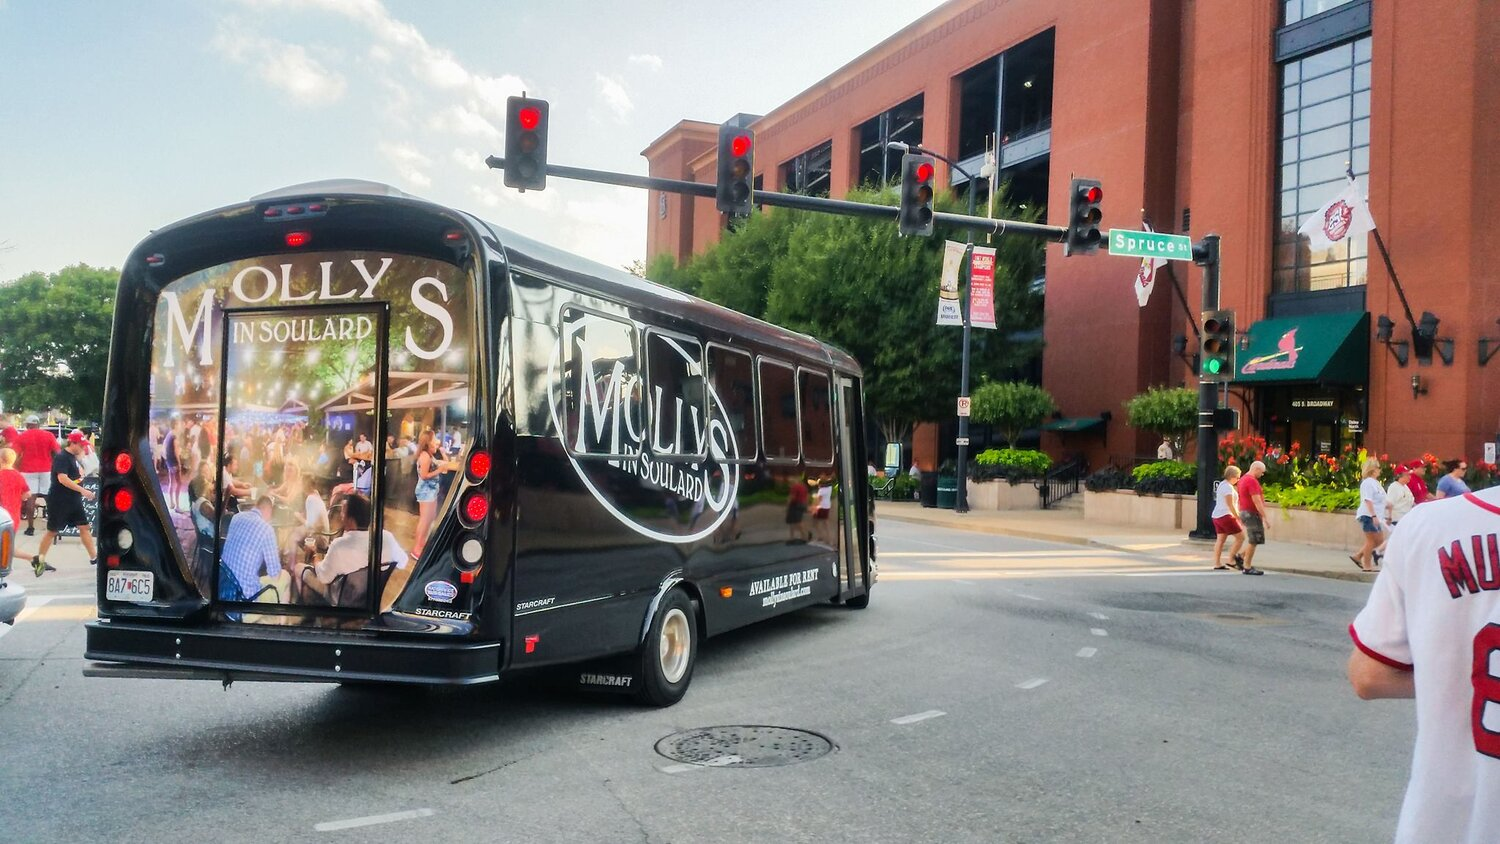 Molly's In Soulard Shuttle